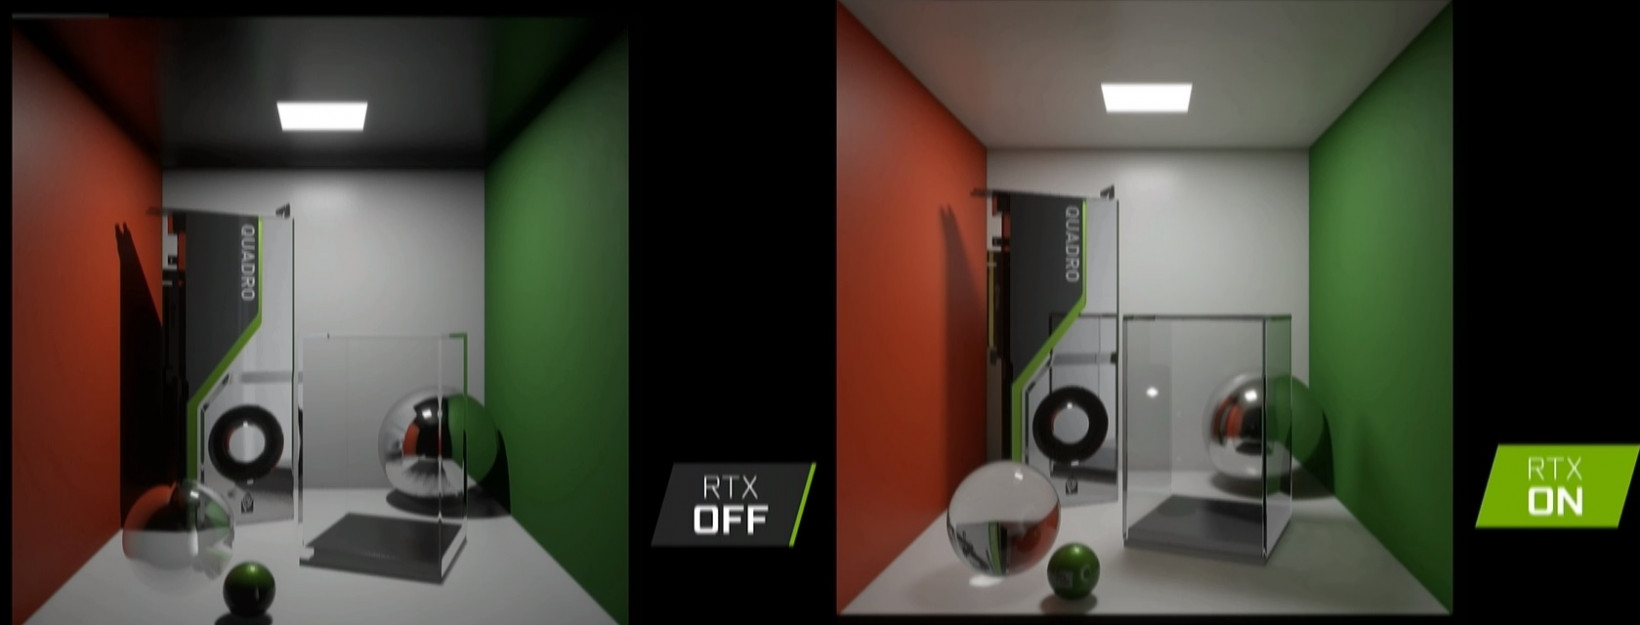 Nvidia Reveals Its Rtx Graphics Cards With Game Changing Ray Tracing